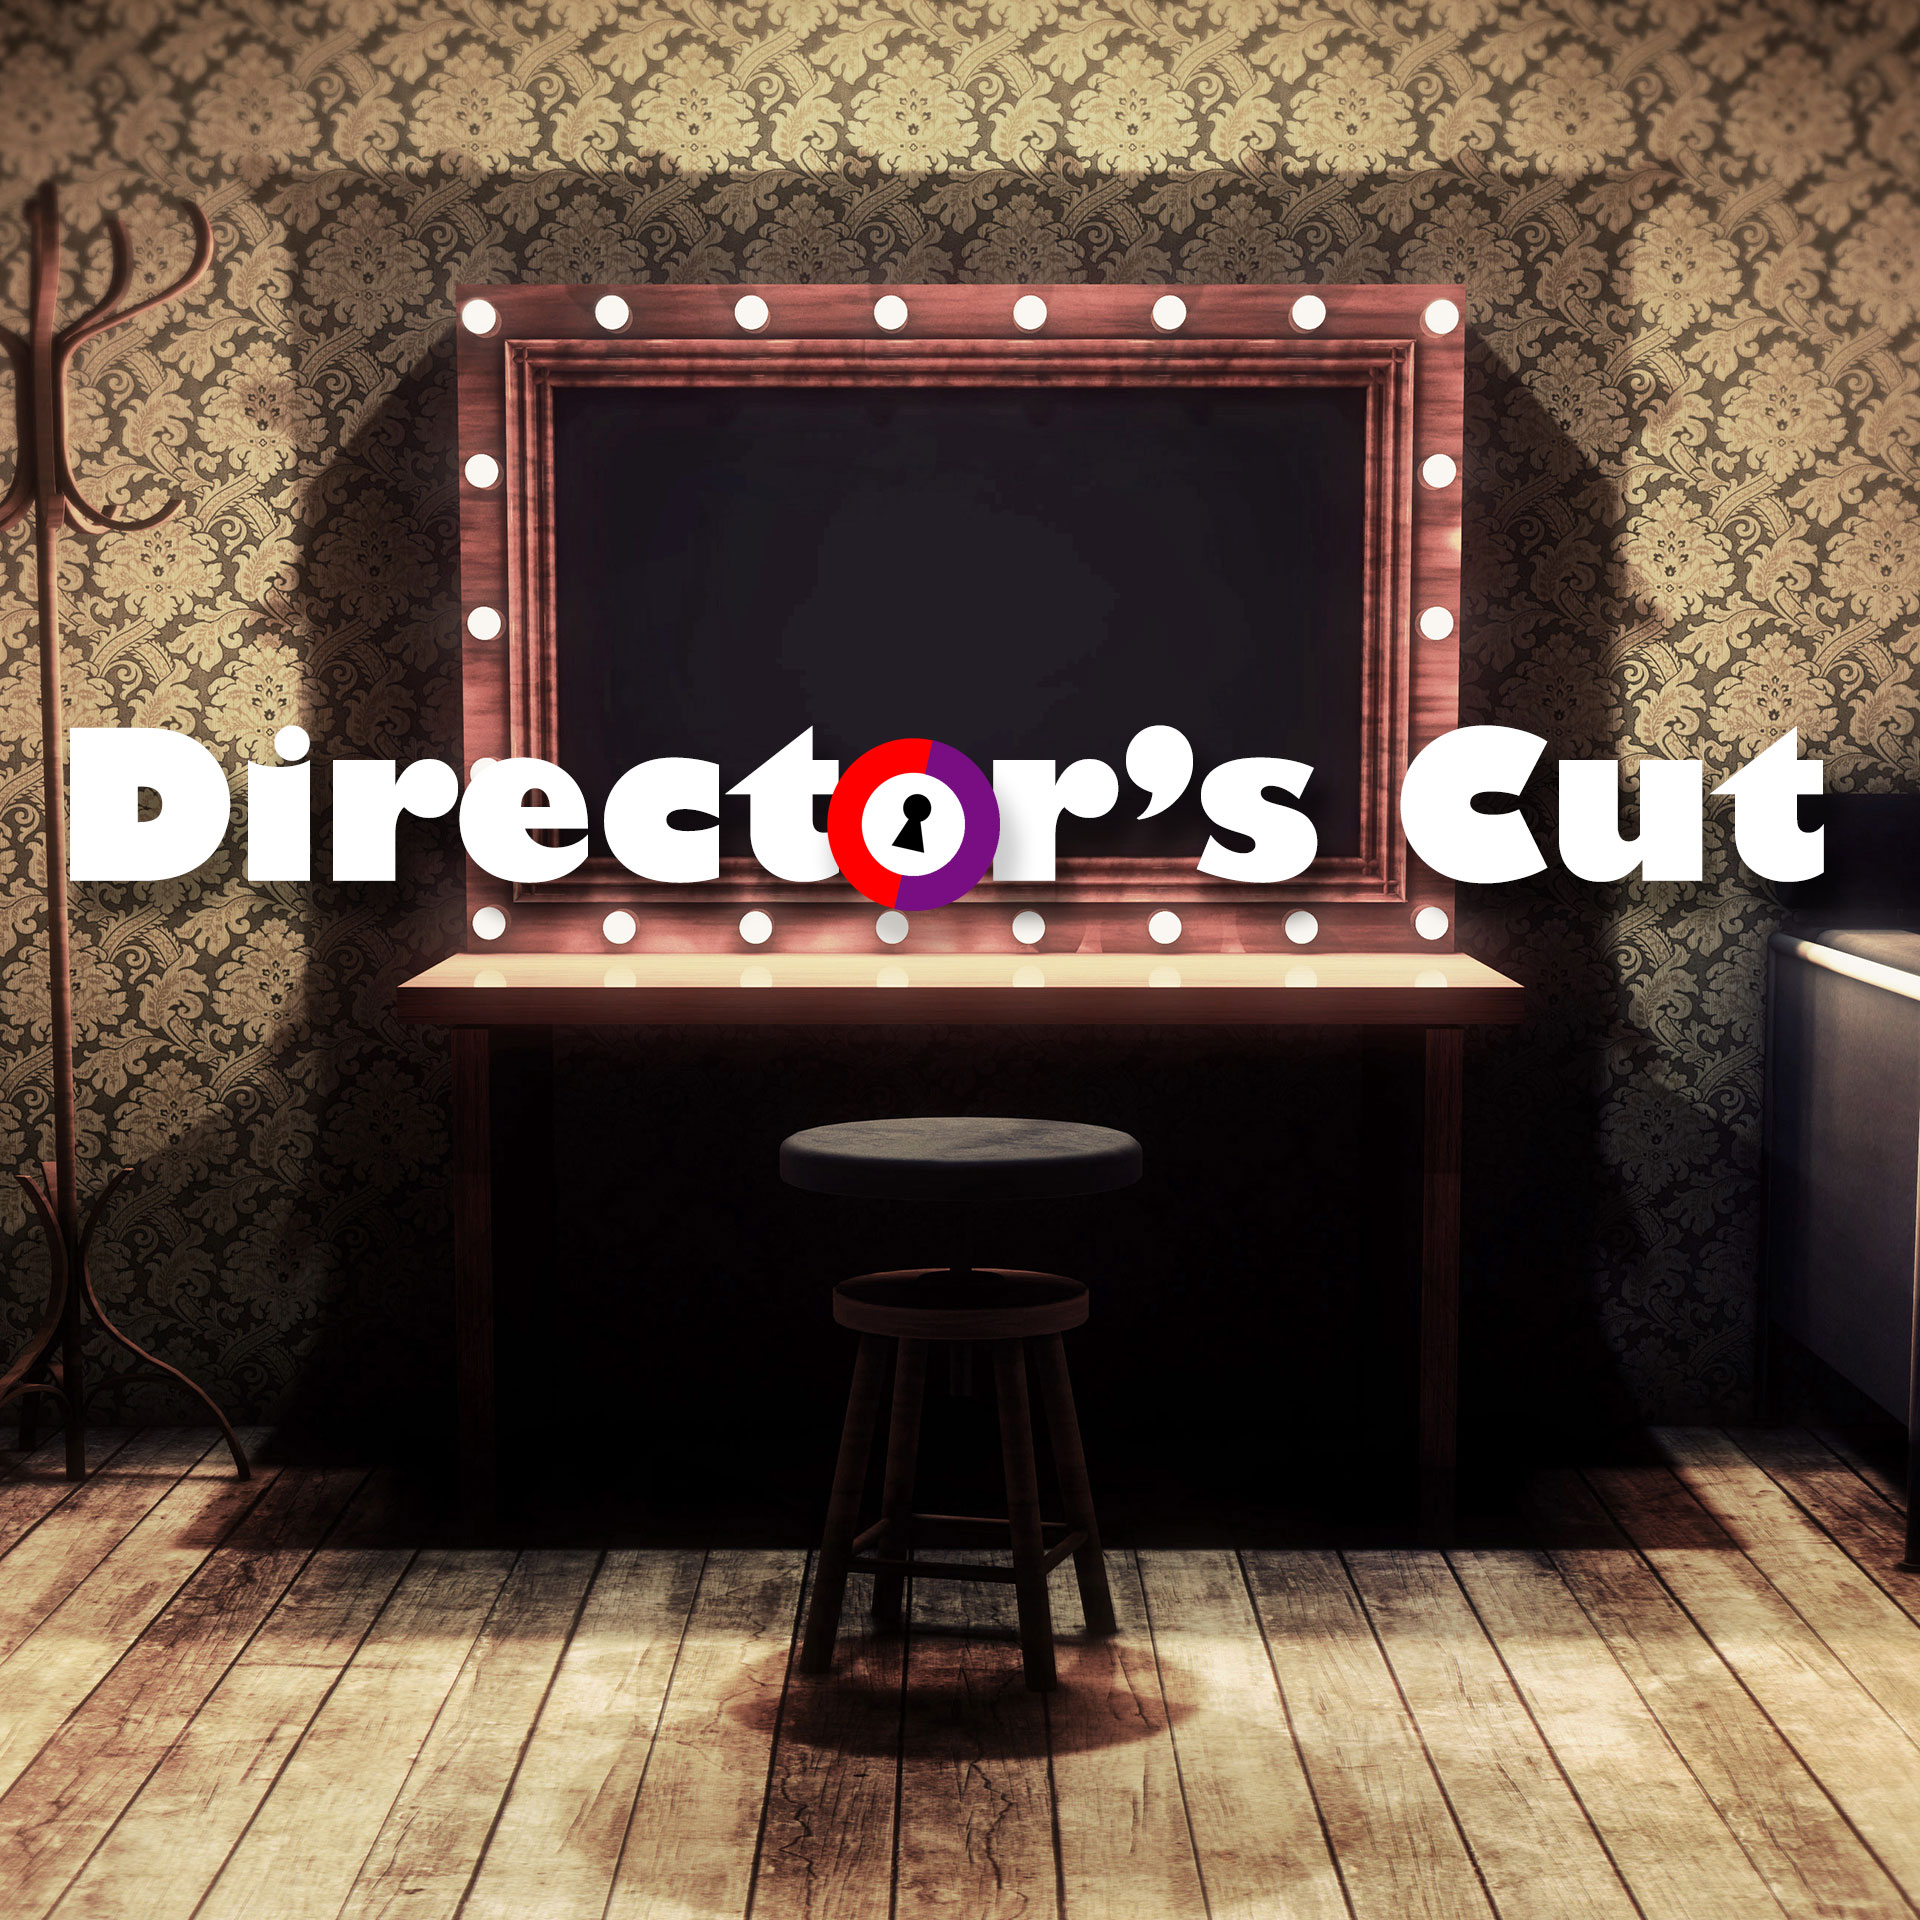 Final Mission Countdown: Director's Cut